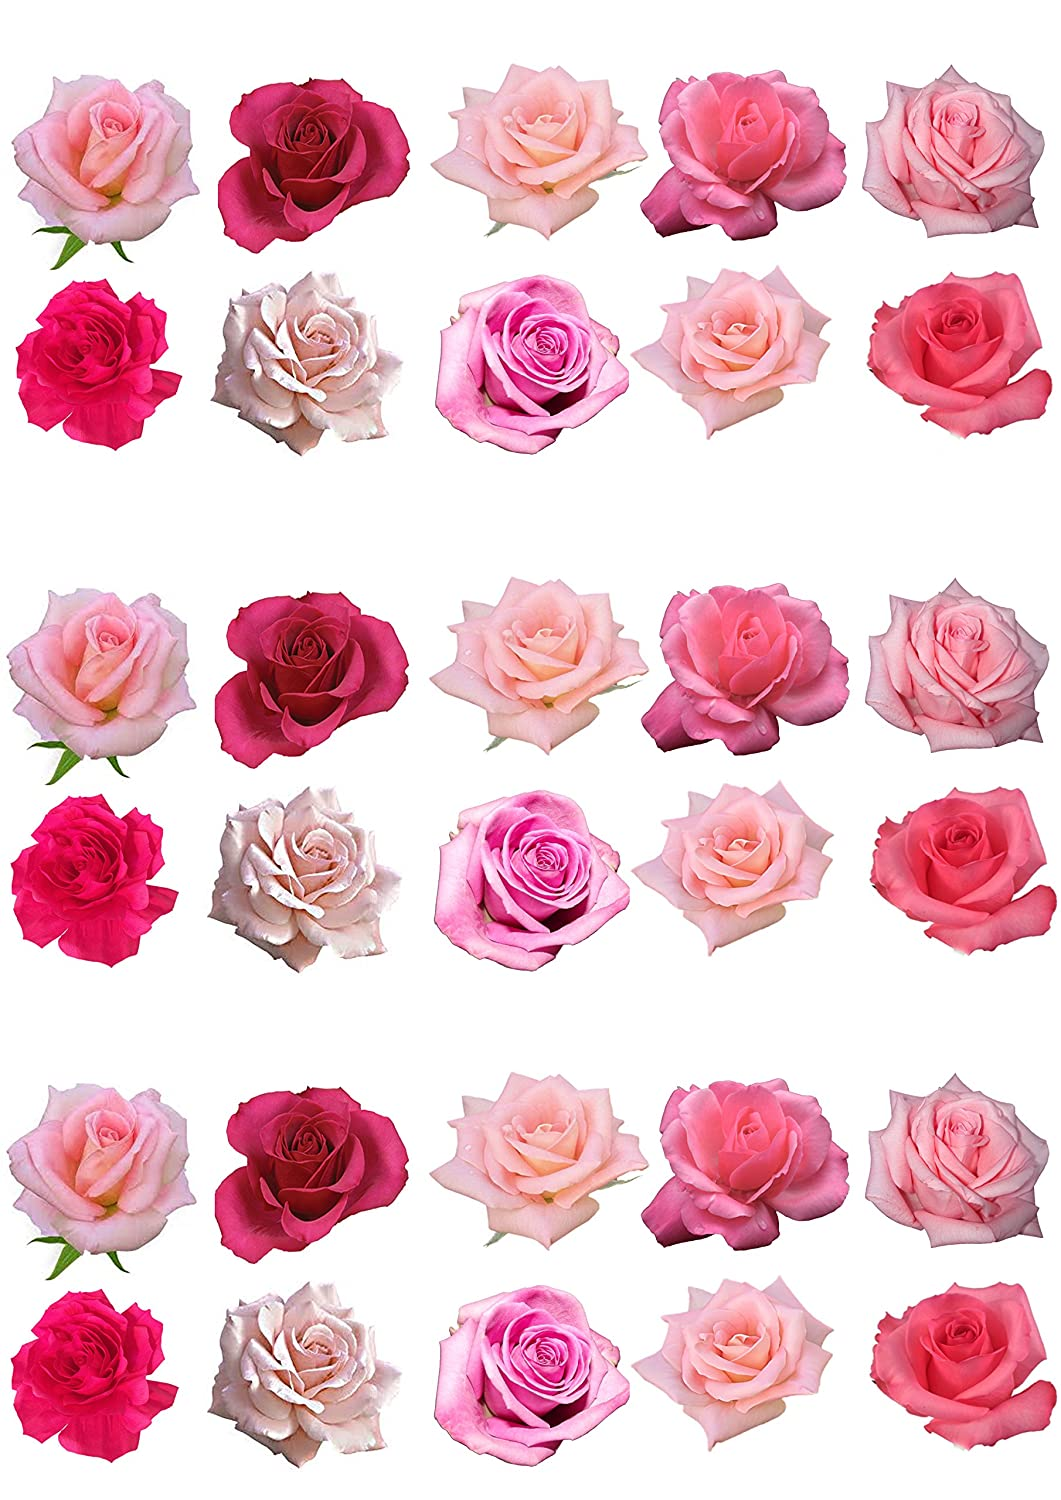 30 Mixed Pink Roses Edible Wafer Paper Cake toppers Decorations Top That